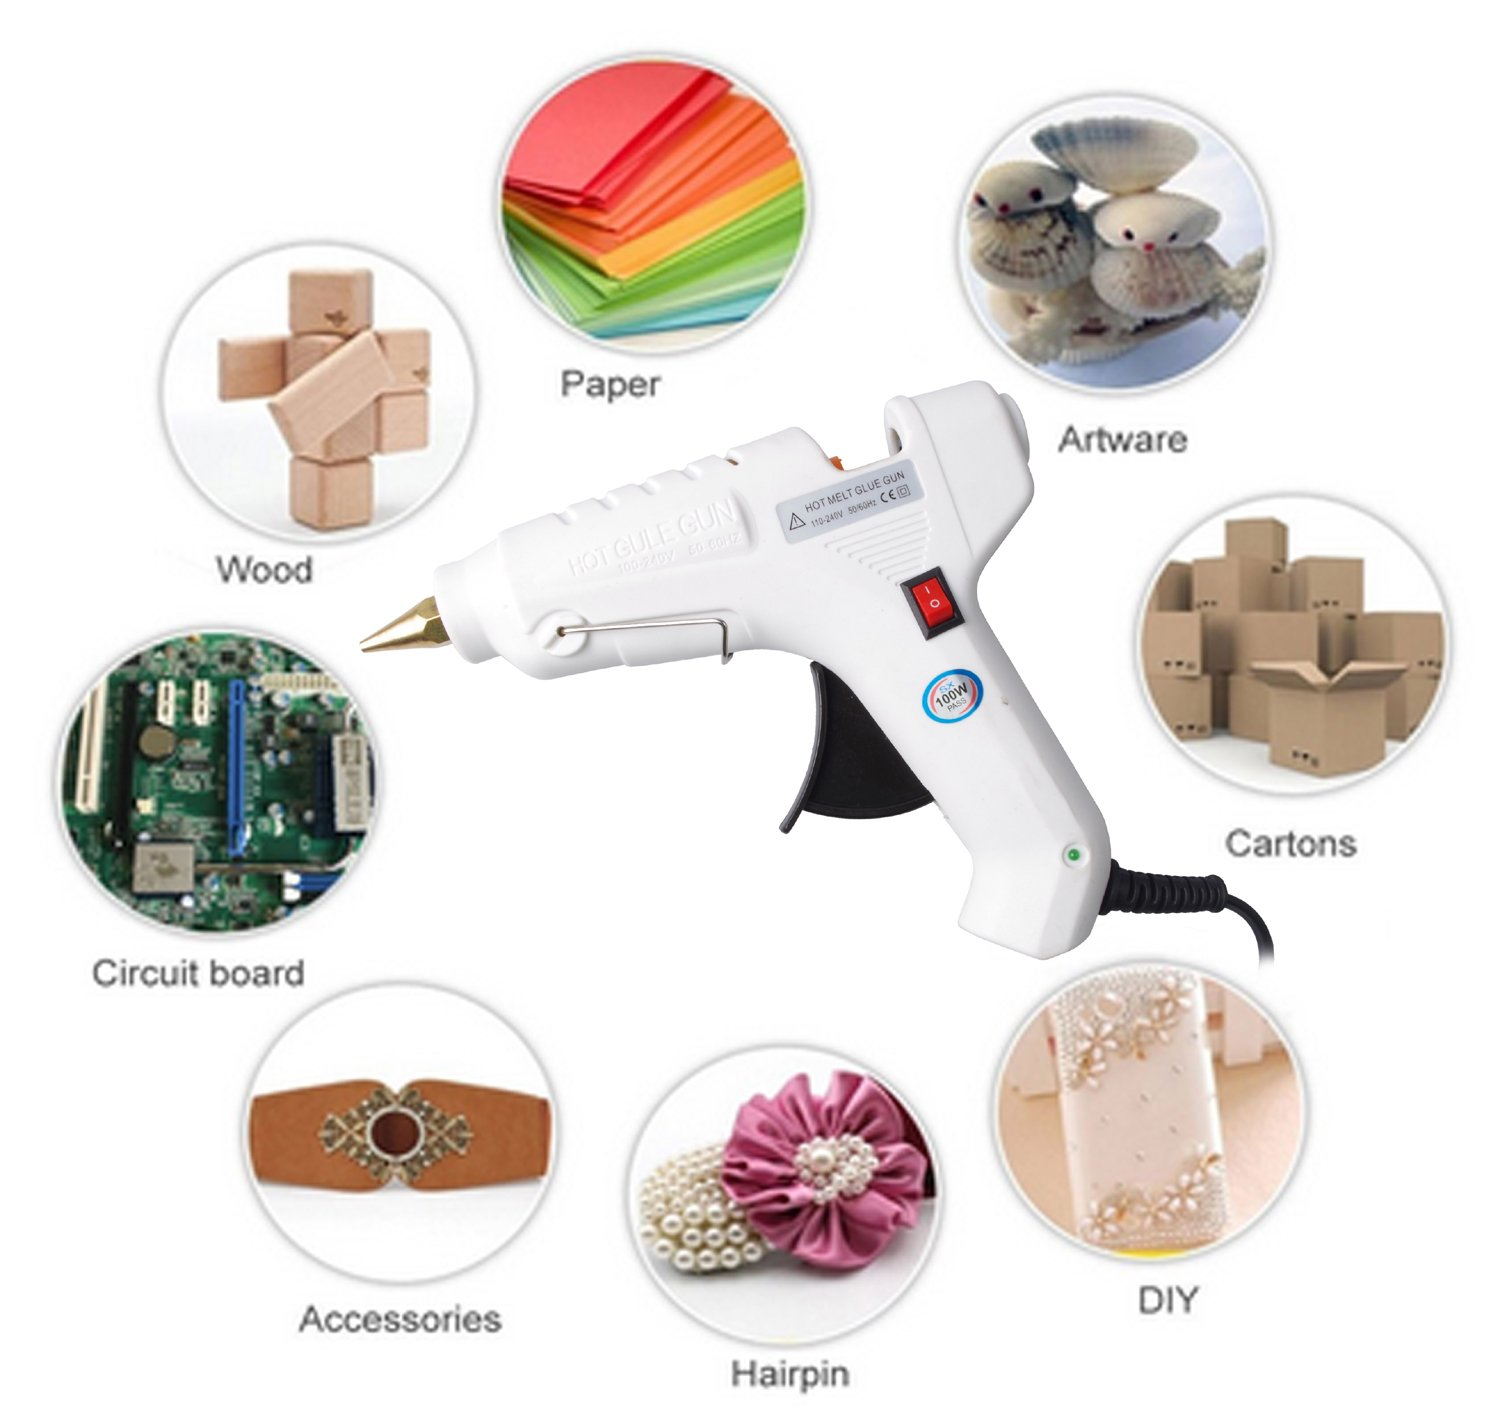 Efaithtek 100 Watt Hot glue Gun with 20PCS Melt Glue Sticks and carry bag for Arts & DIY Crafts, & Sealing and Quick Repairs in Home & Office (White) by Efaithtek (Image #3)